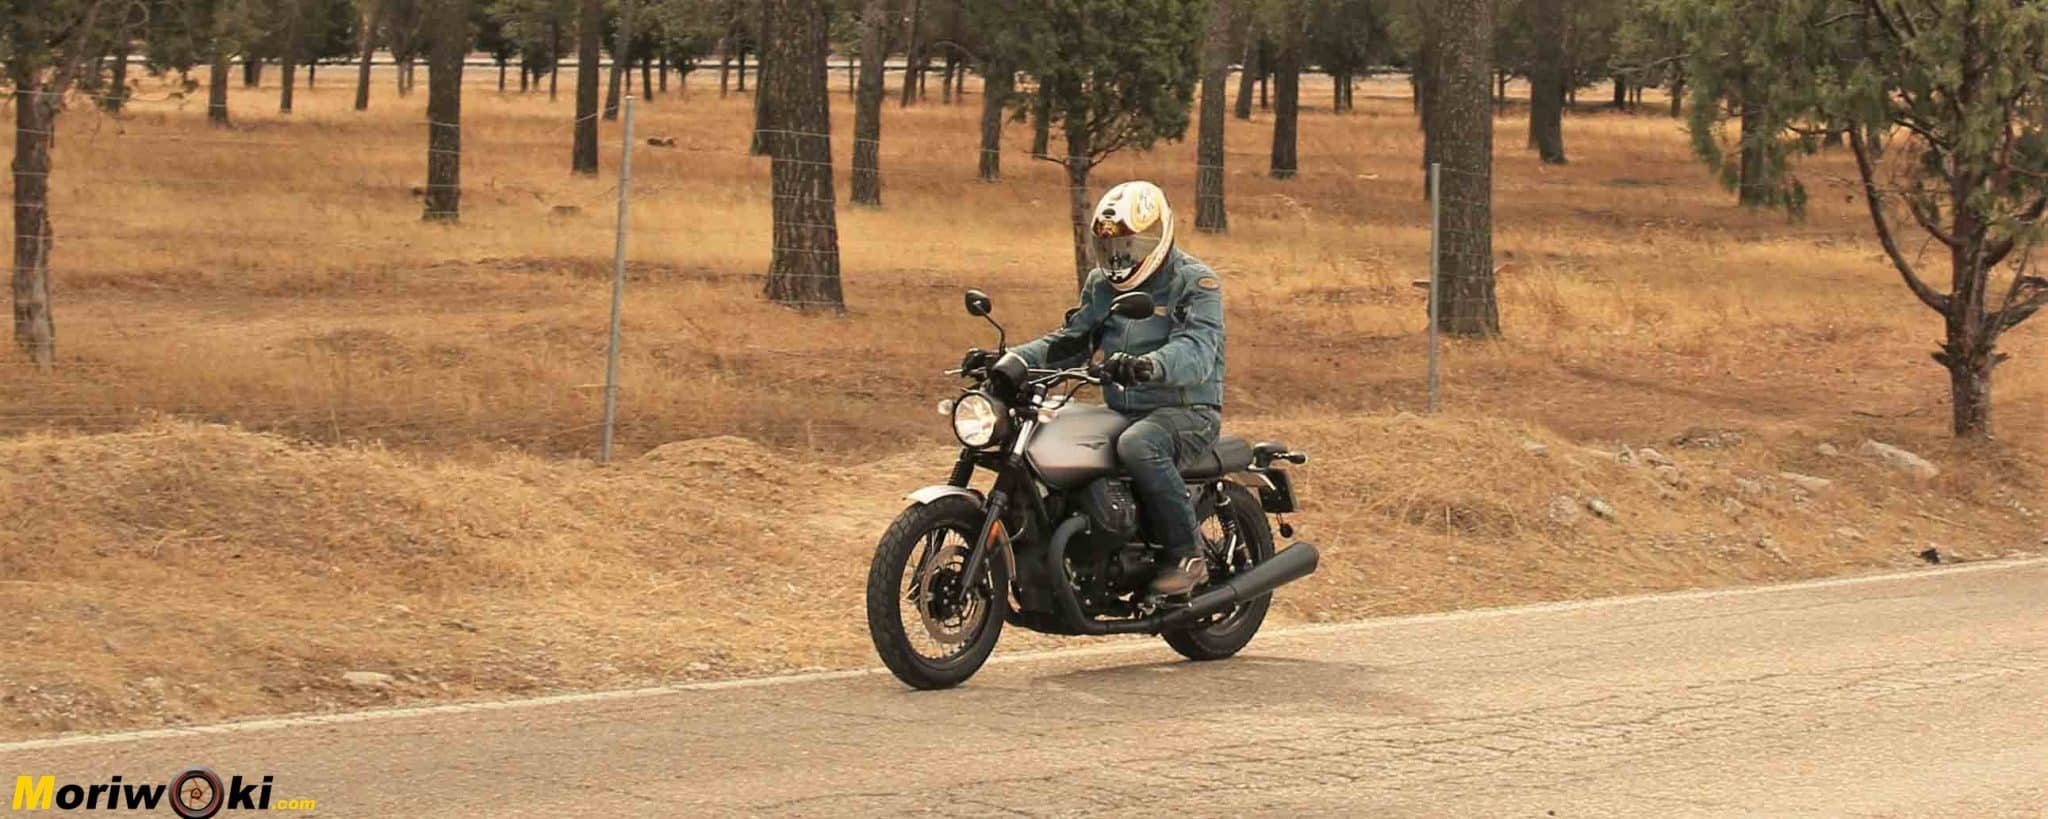 Prueba de la Guzzi V7 III Rough: la urban-country